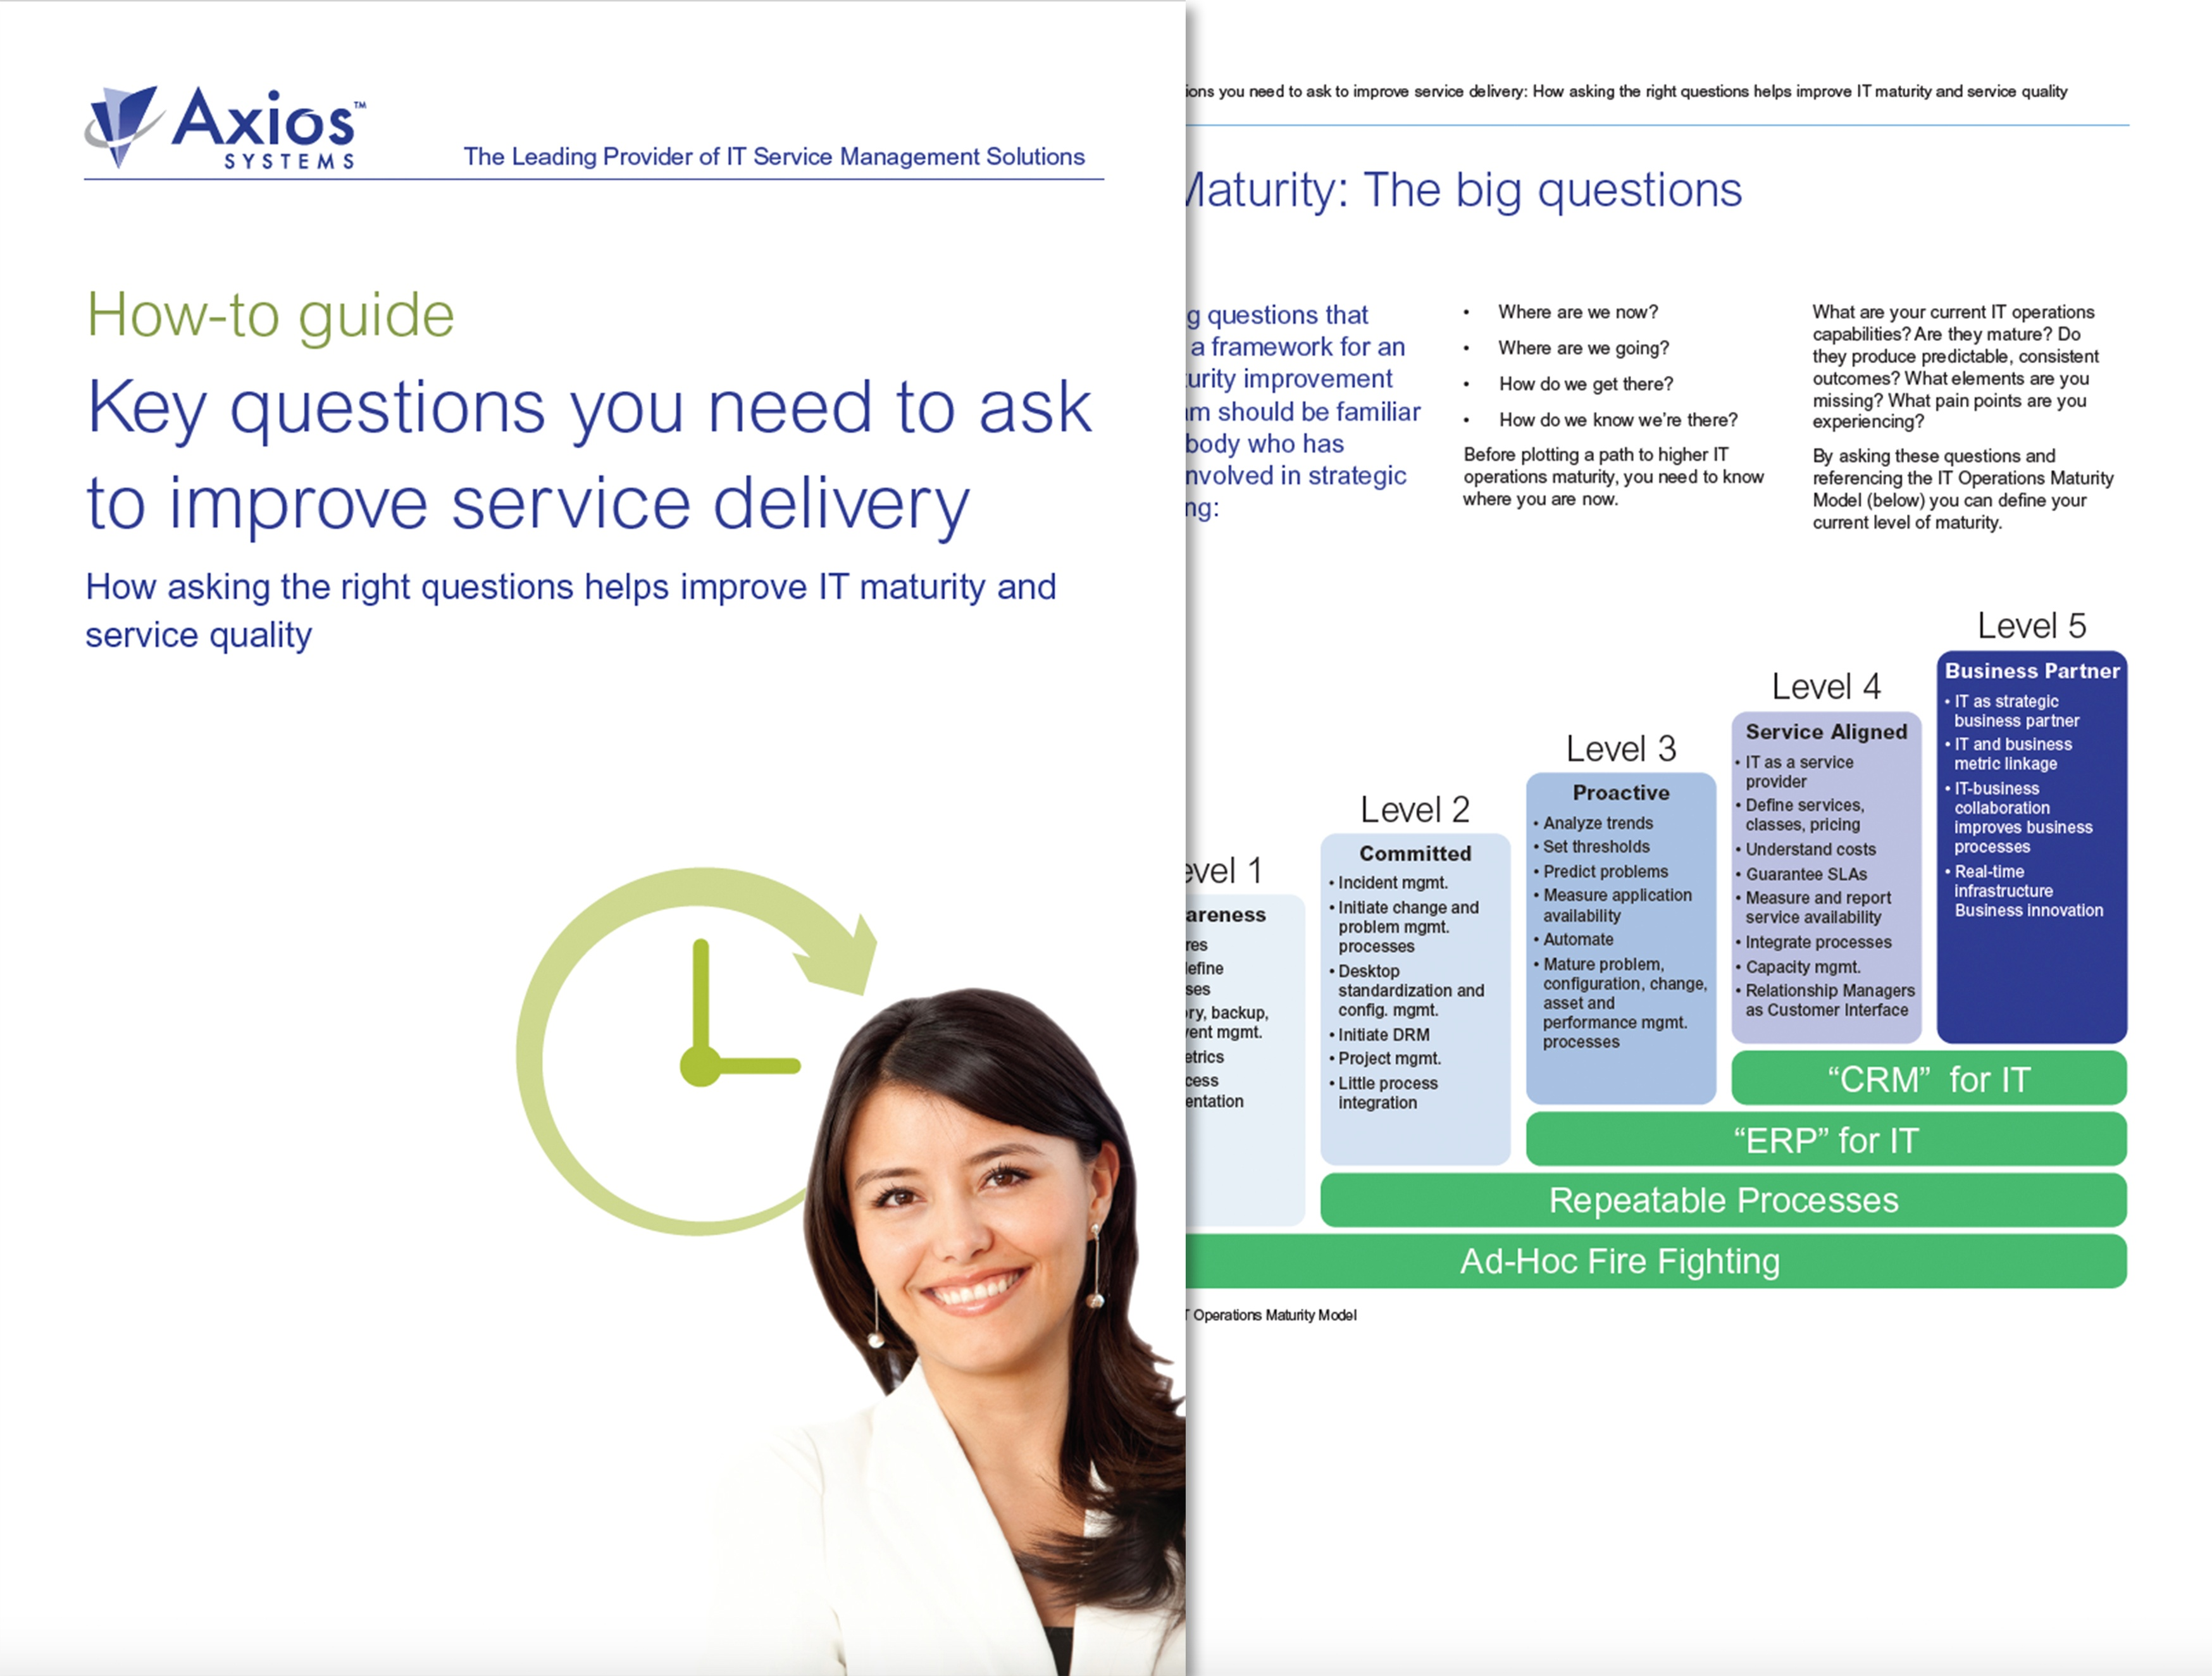 guide_key_questions_you_need_to_ask_to_improve_service_delivery